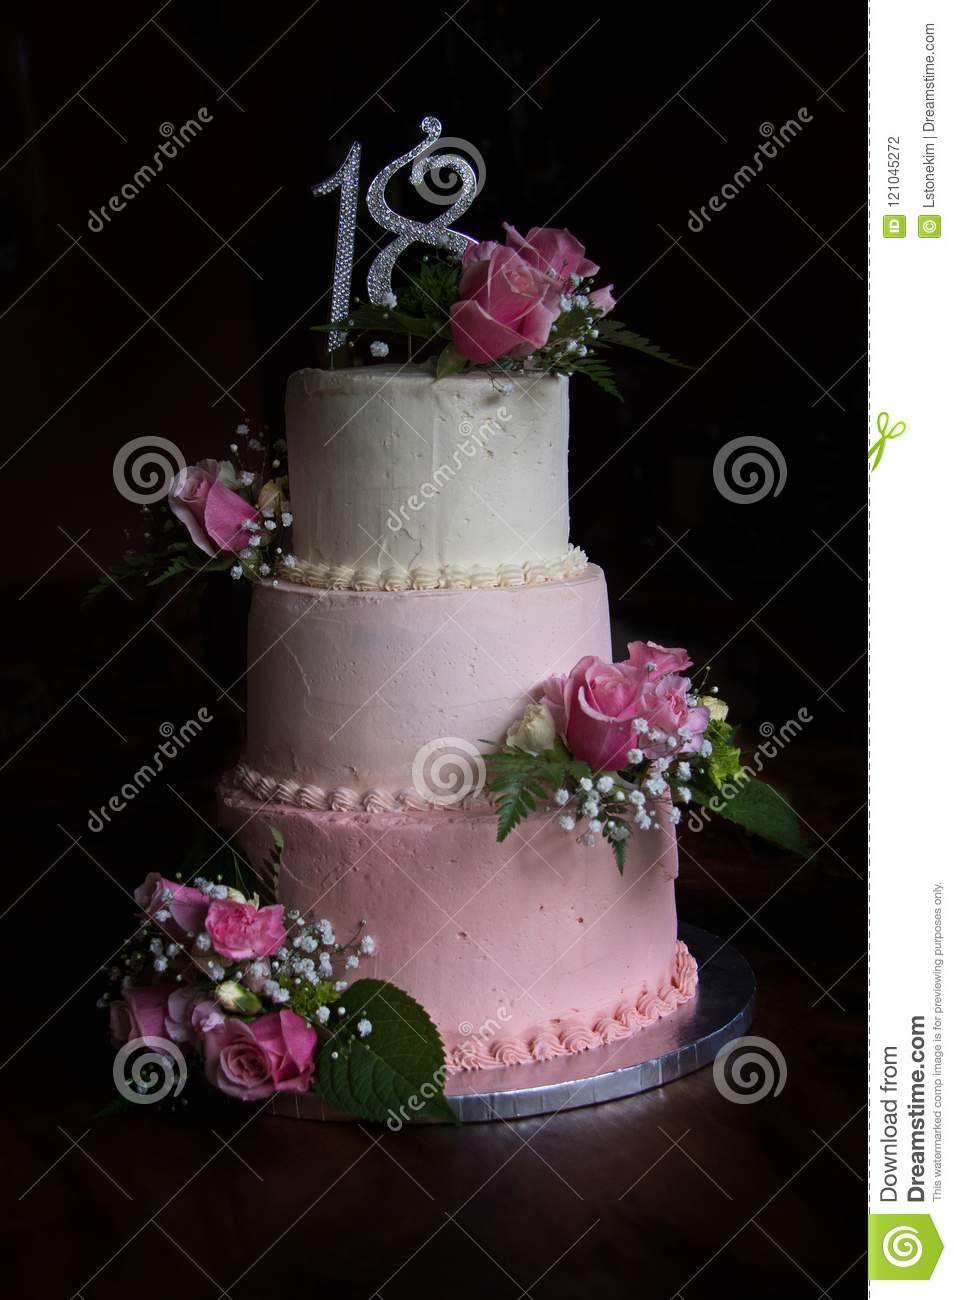 Beautiful Three Tier Shades Of Pink Birthday Cake With Fresh Flowers To Celebrate Special 18th